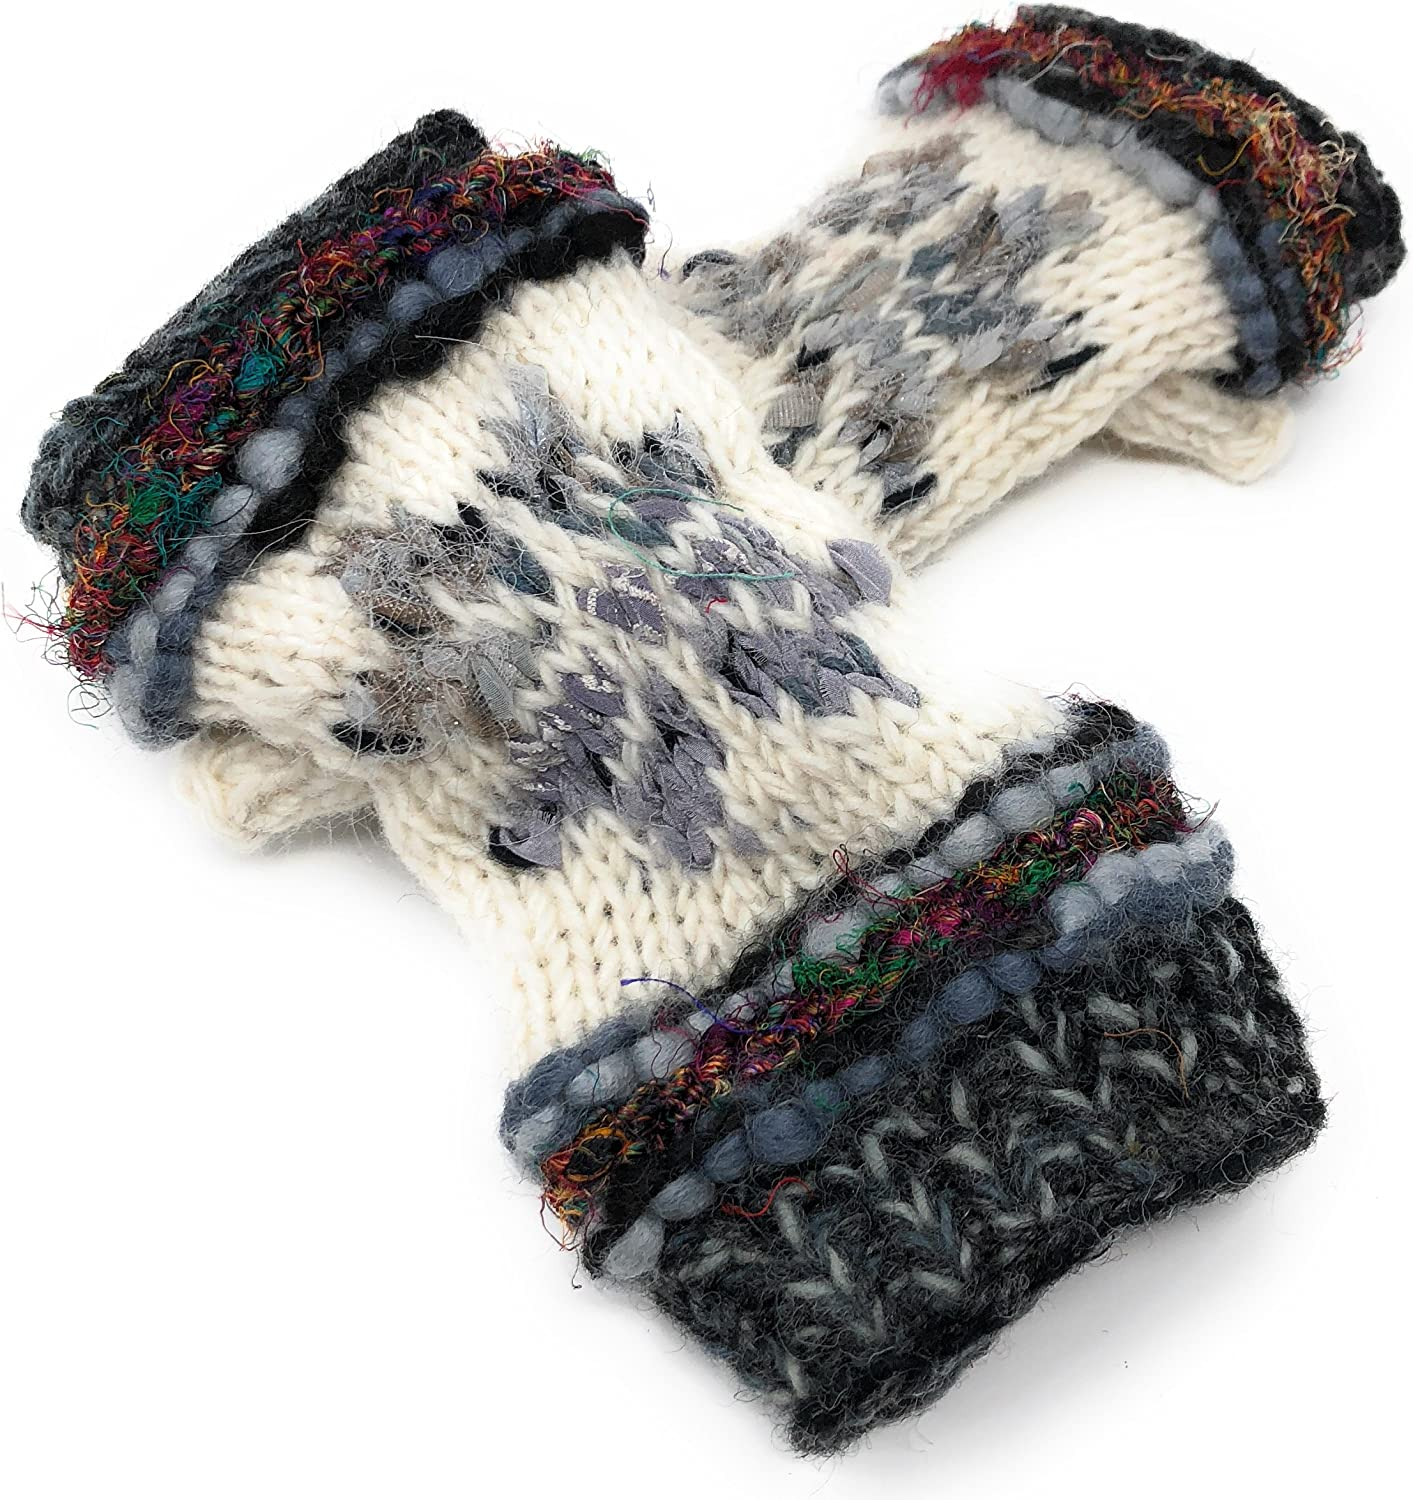 Snowflake Fair Isle Insulated Lined Knit Texting Fingerless Gloves Thumb Hole Mittens